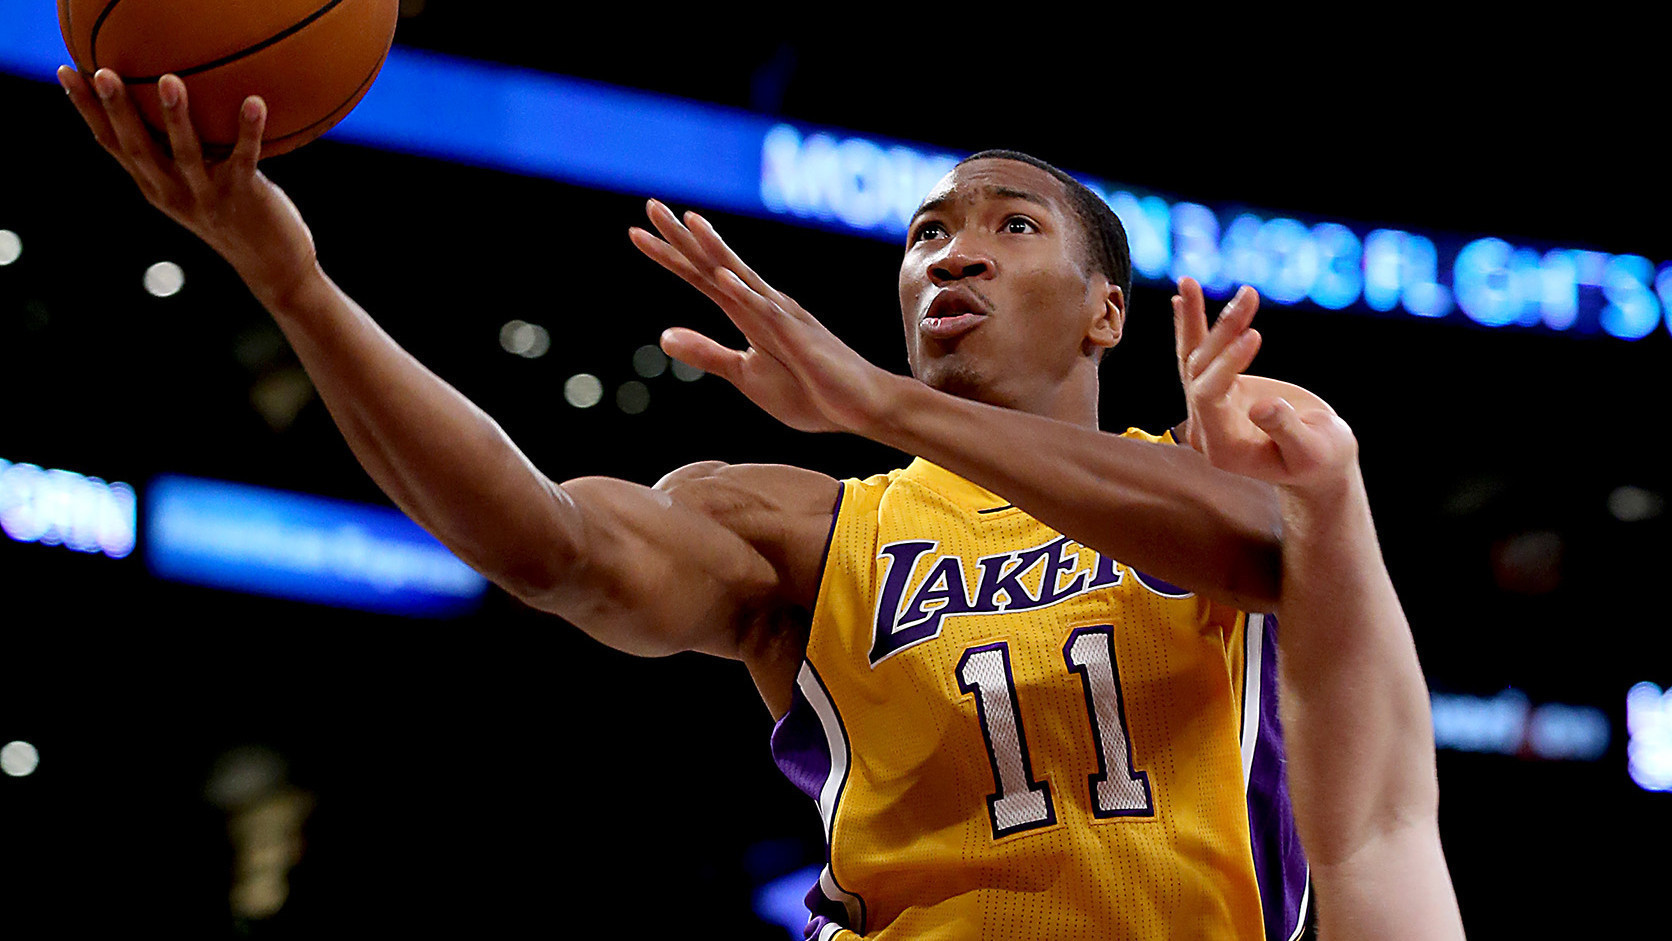 Lakers' Wesley Johnson staying quiet about Kobe Bryant's condition